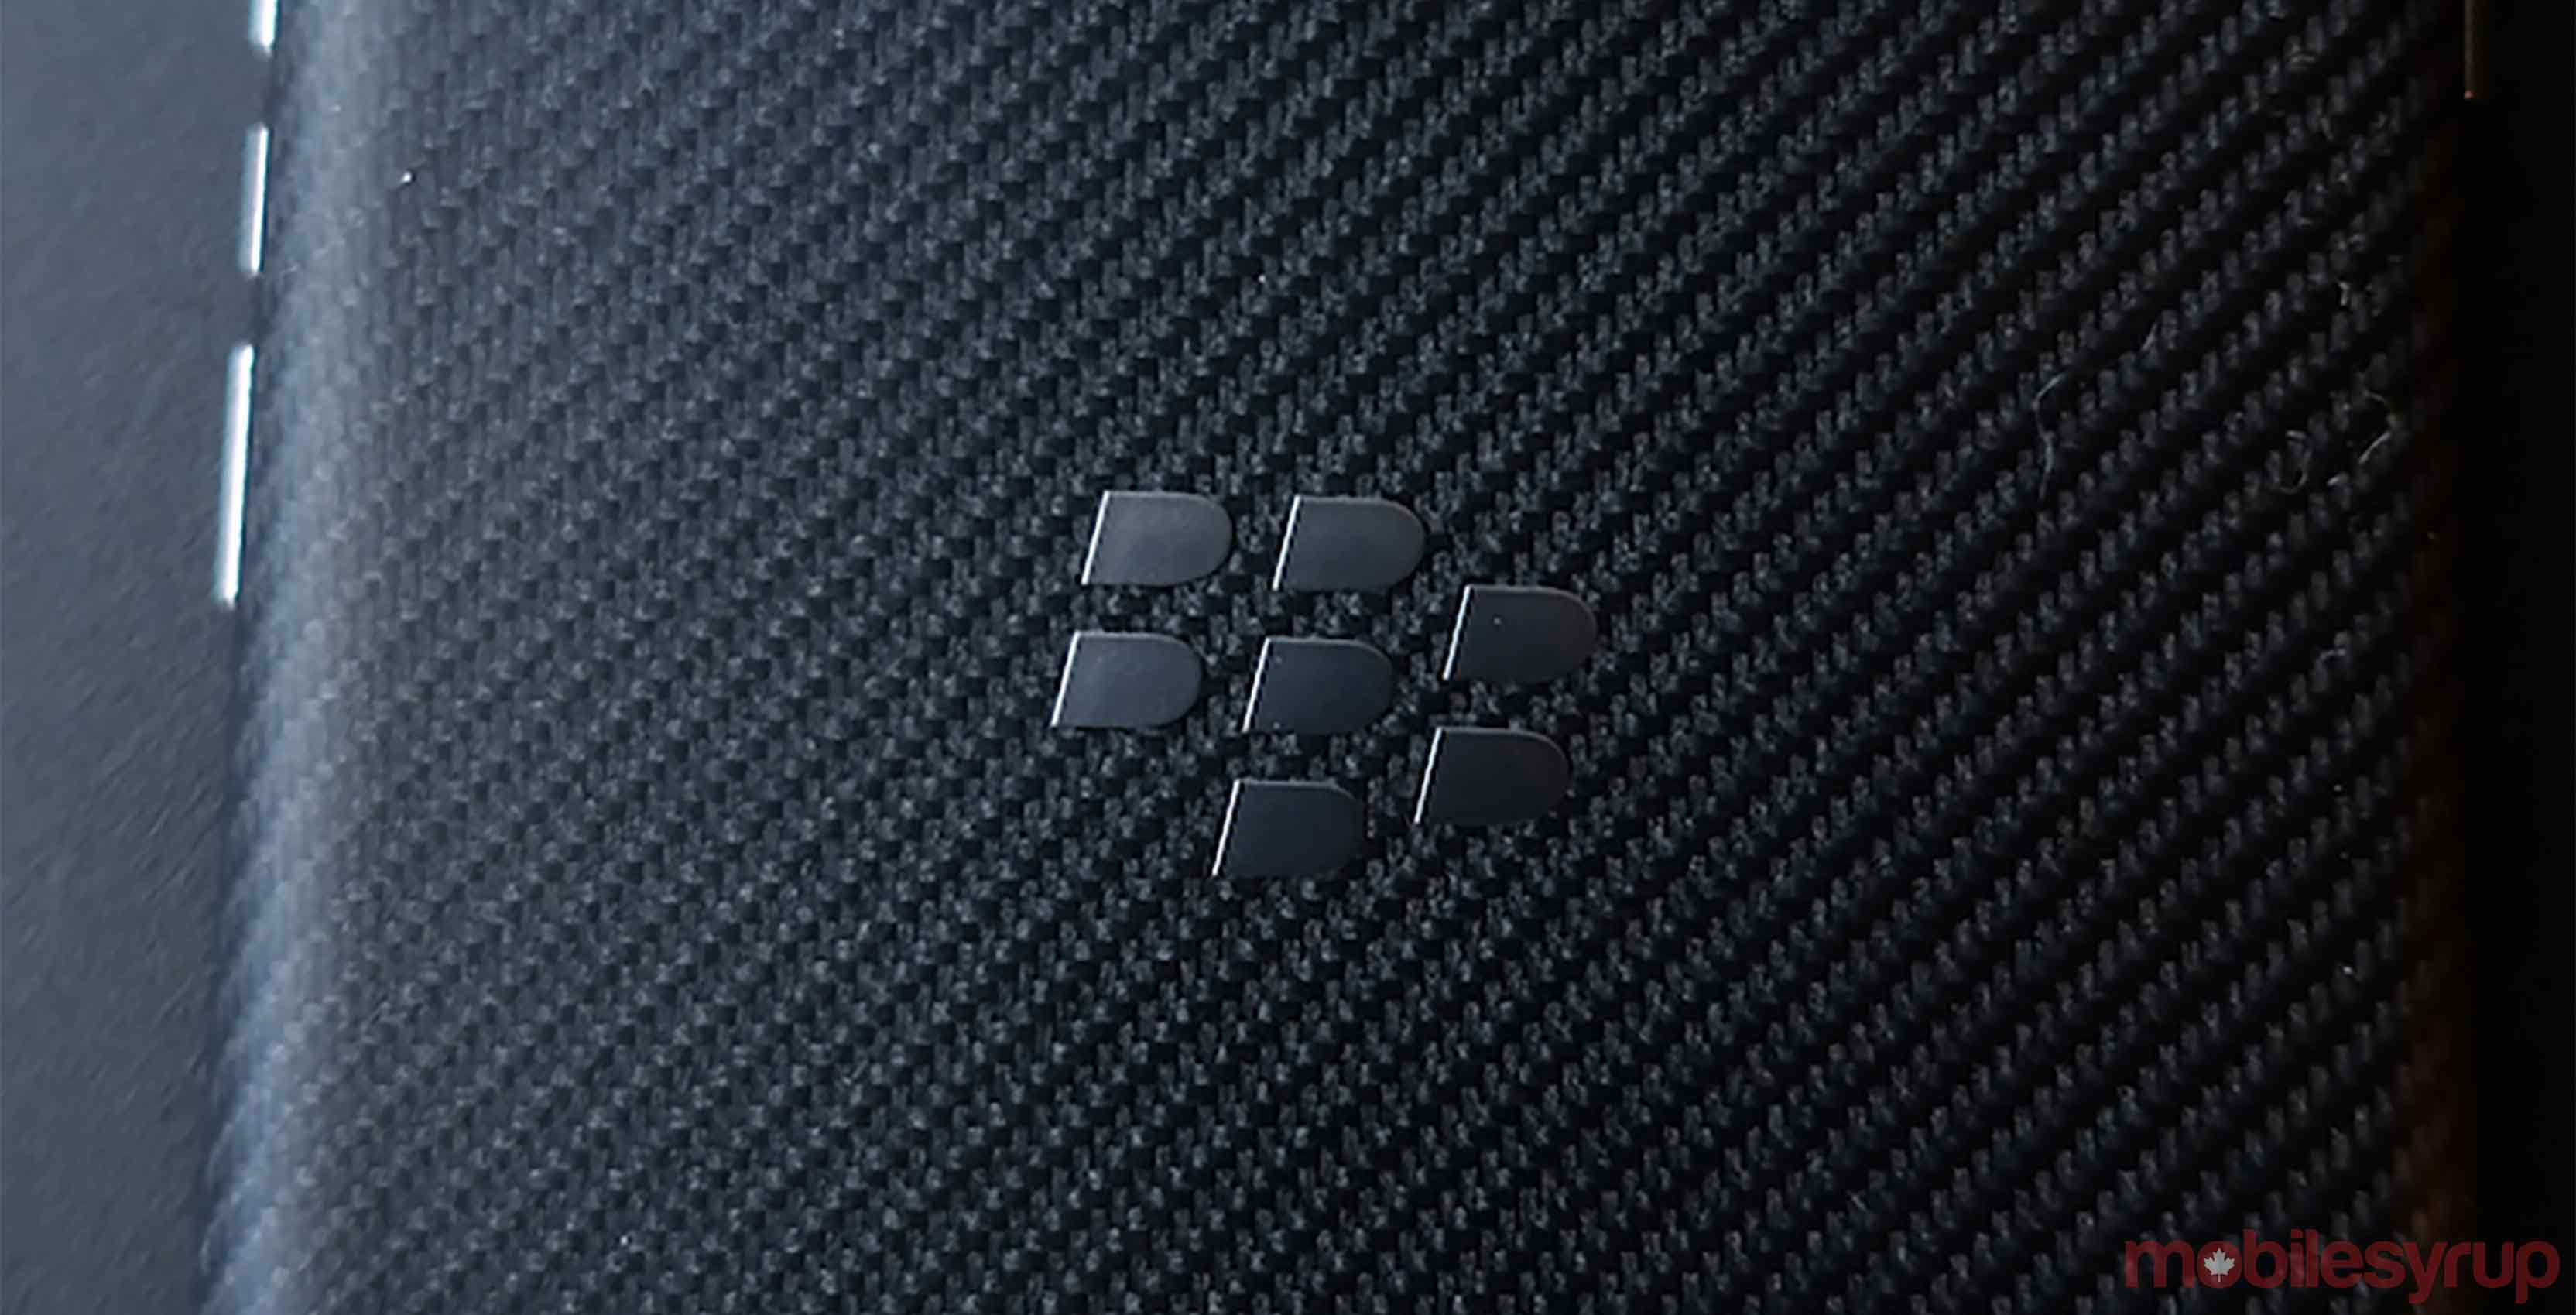 BlackBerry back of phone with logo